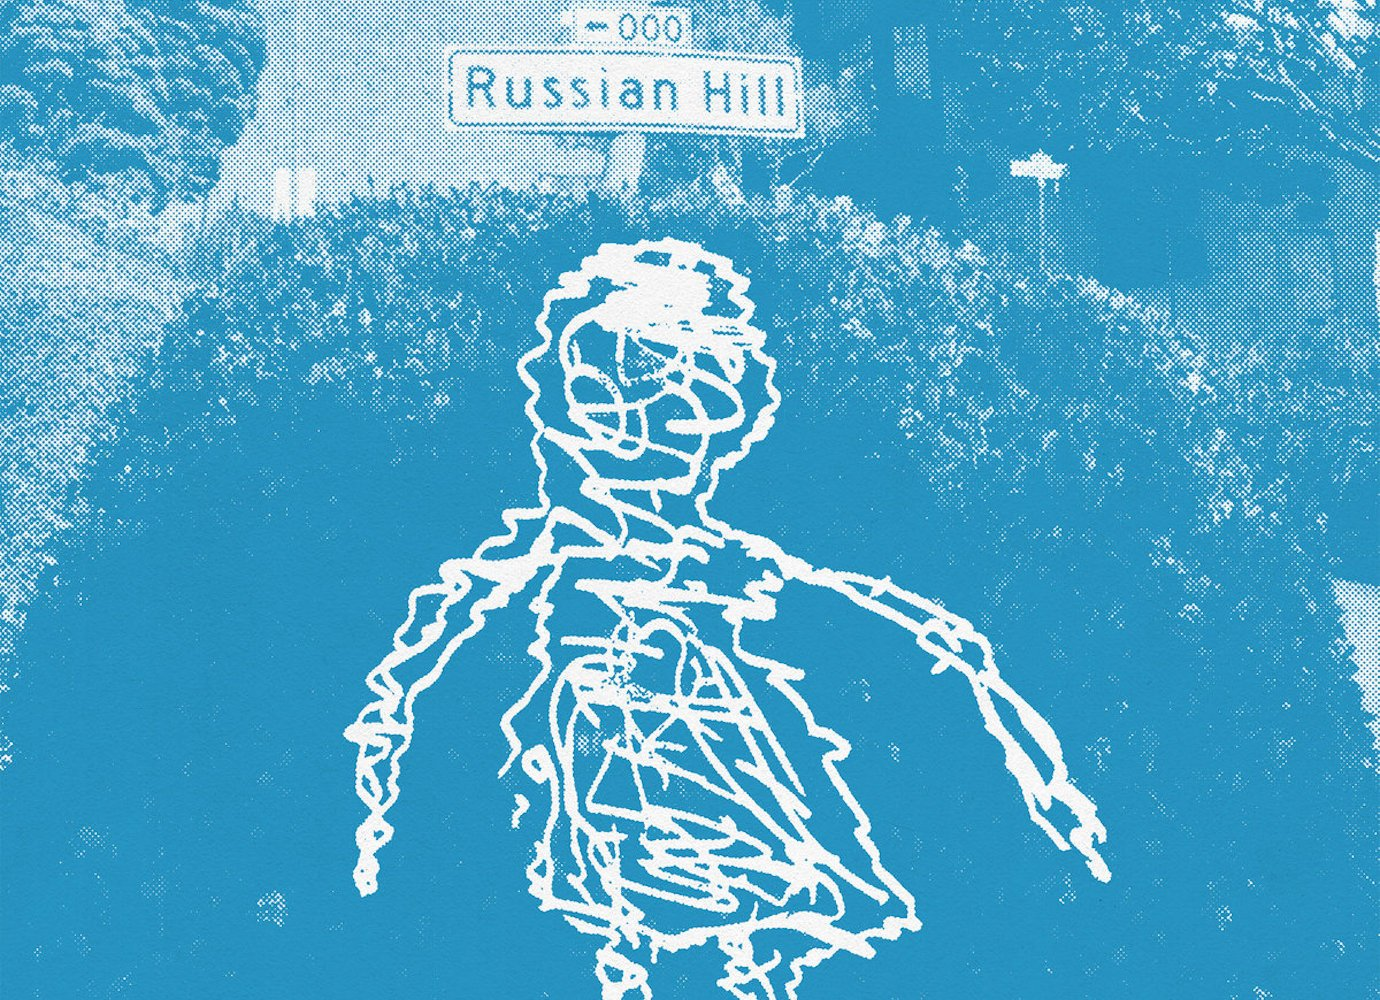 Russian Hill Chiropractic: new electronic music meditating on what it means to be Russian